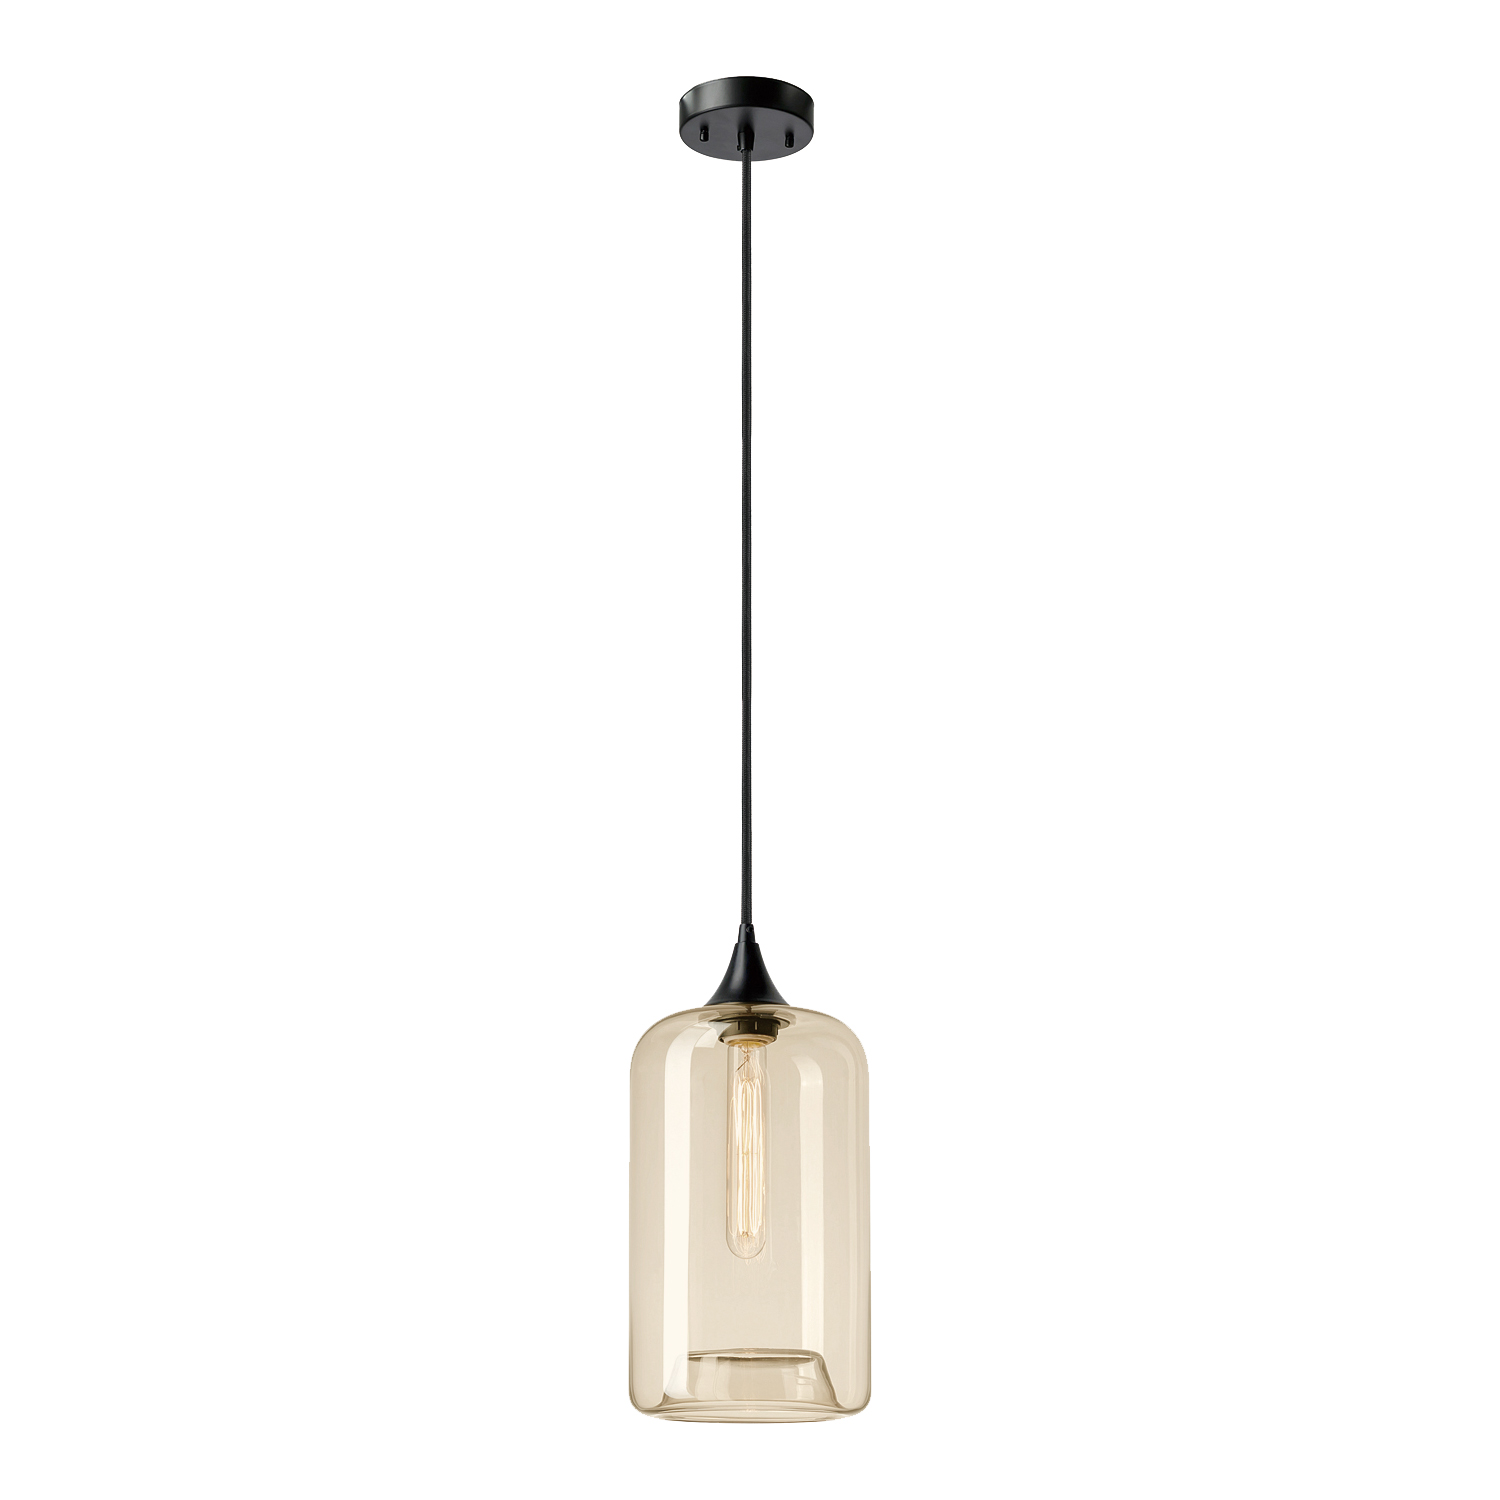 Globe Electric Ariana 1-Light Matte Black Pendant with Amber Glass Shade, 65612